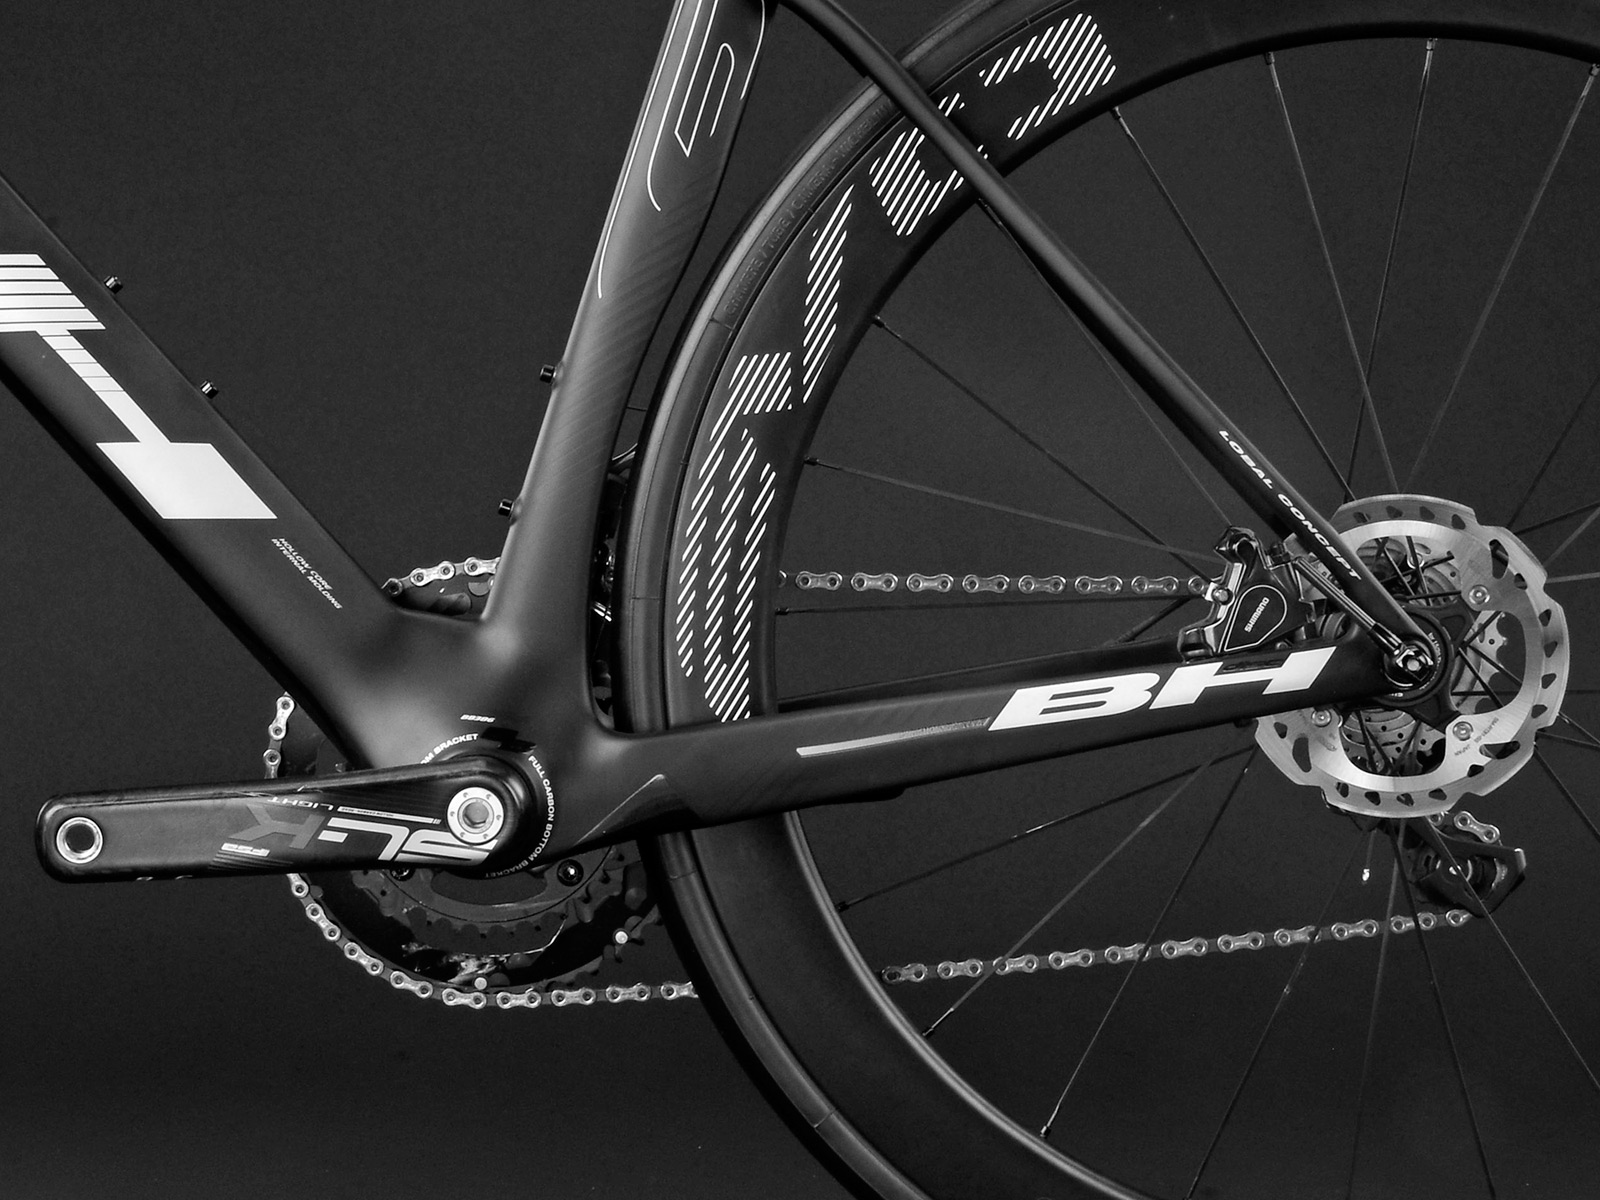 BH-Bikes_G7-Disc_aero_disc-brake_road-bike_non-driveside-detail